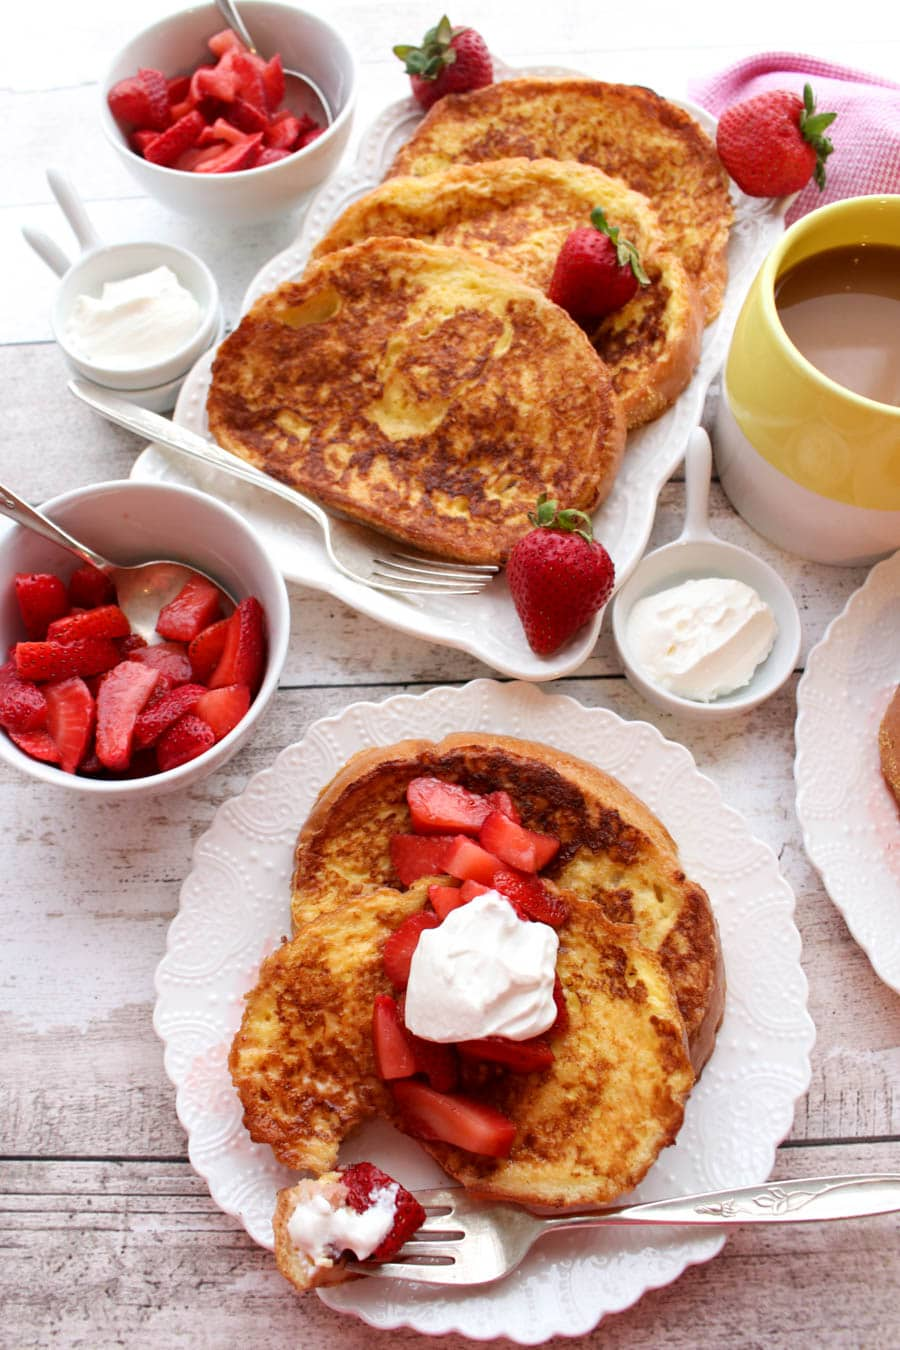 Platter and plates of french toast with strawberries and sour cream